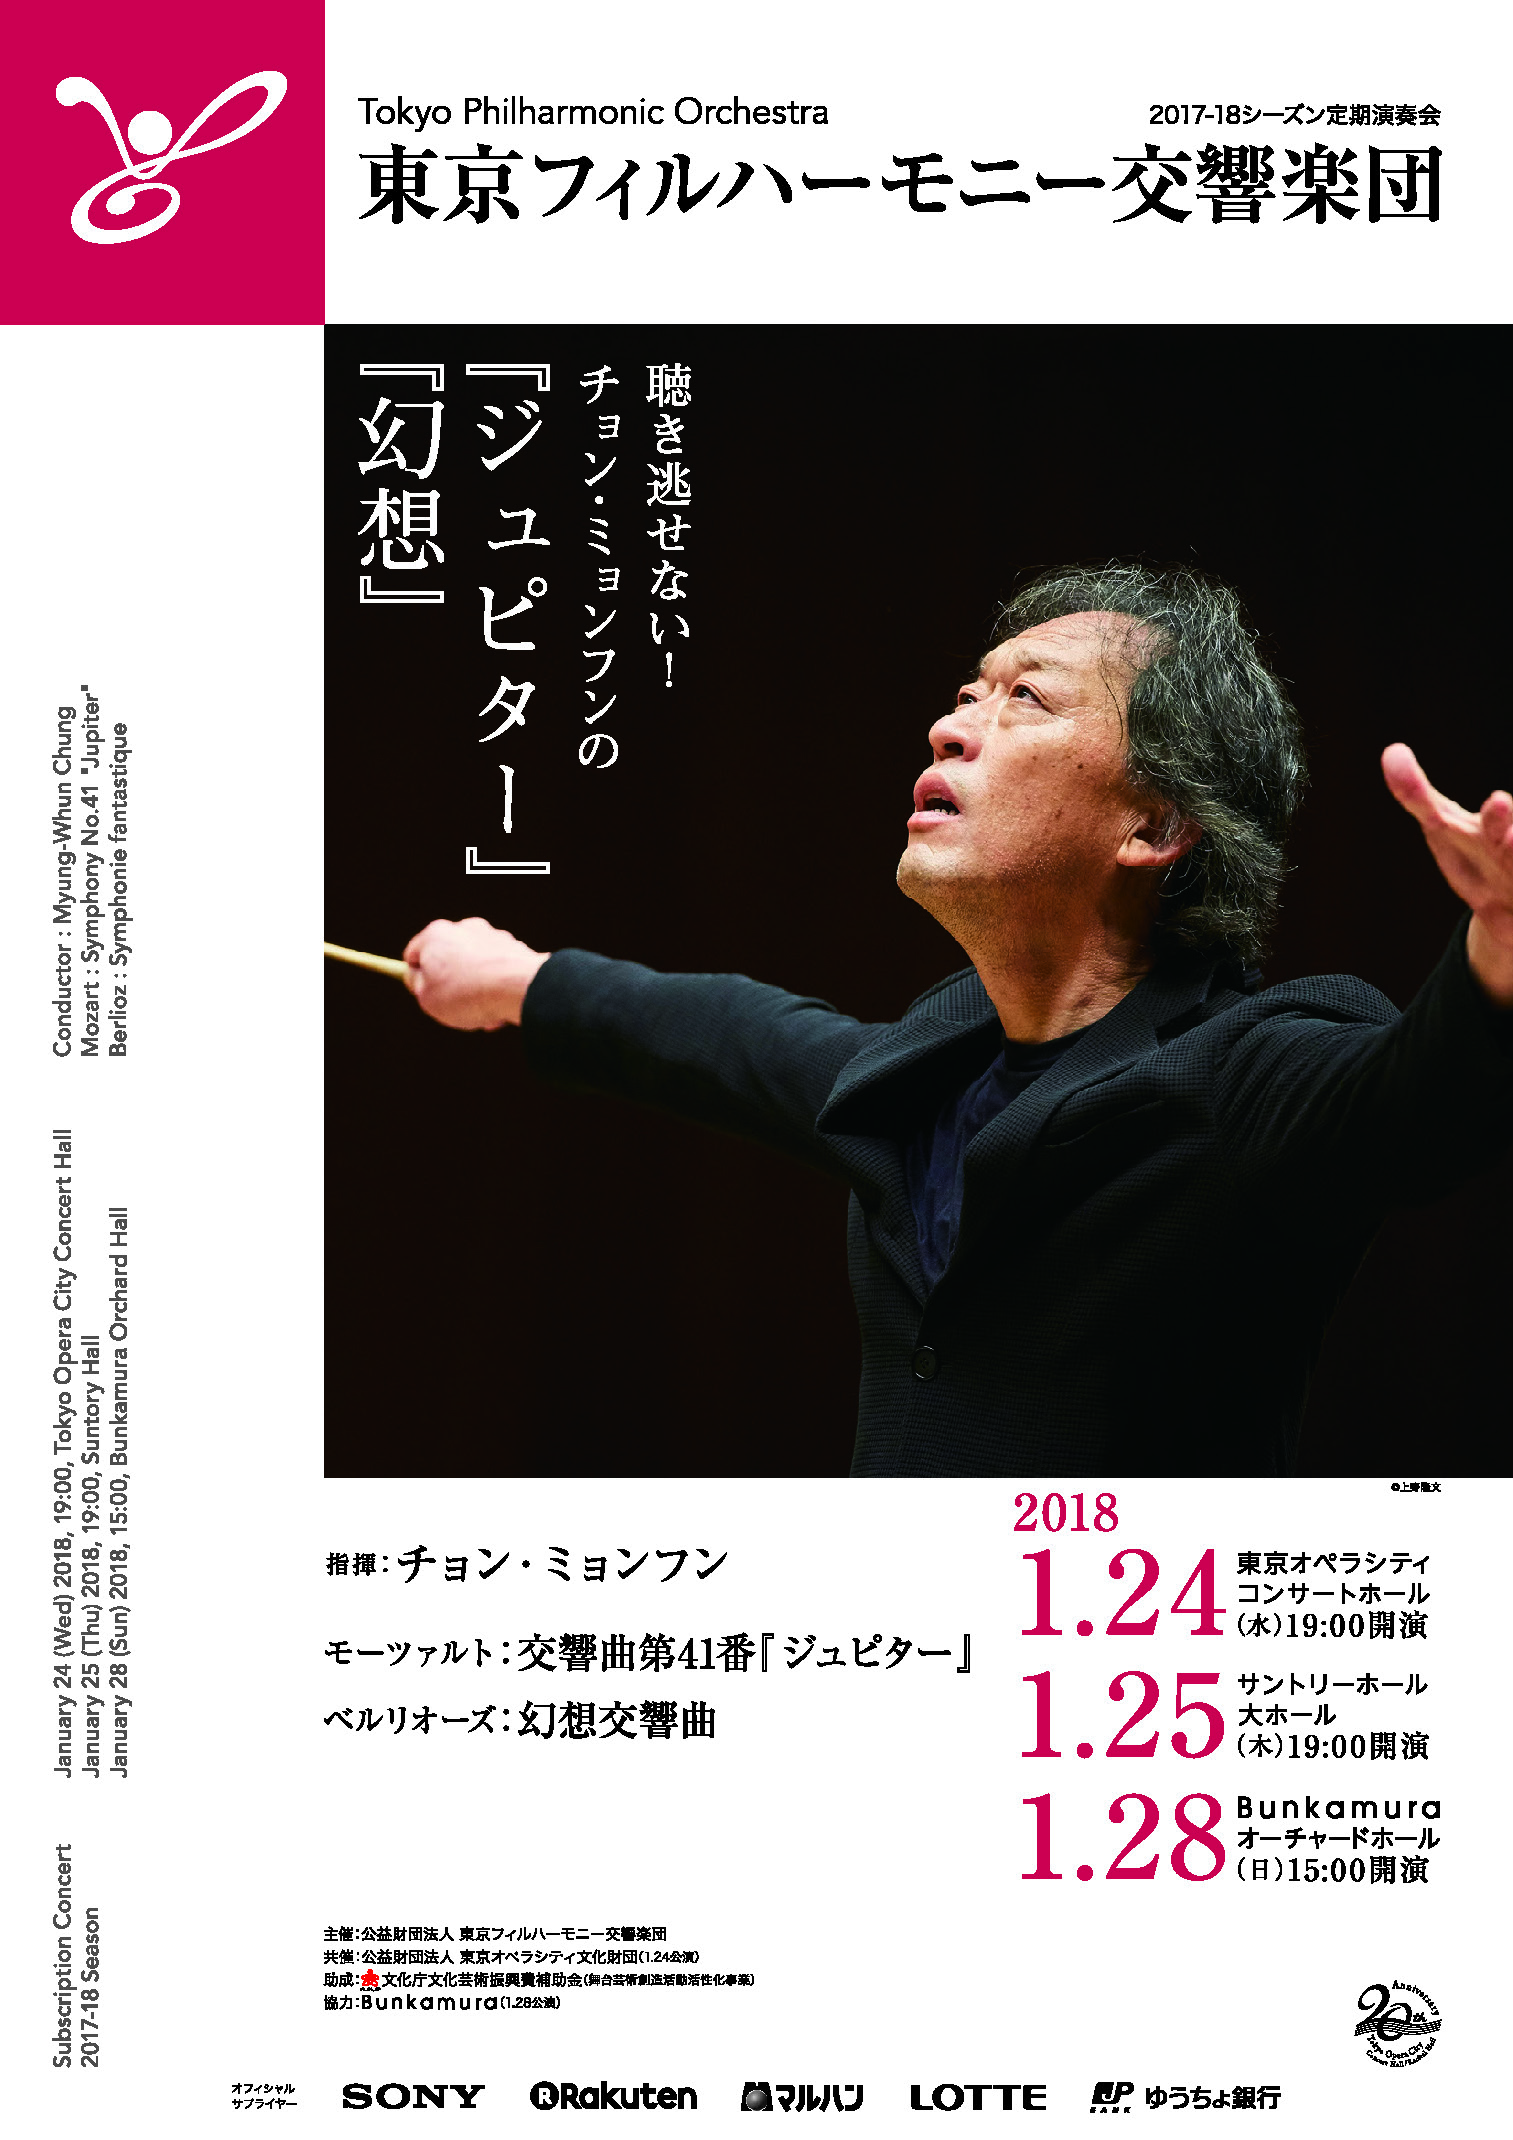 The 878th Subscription Concert in Bunkamura Orchard Hall